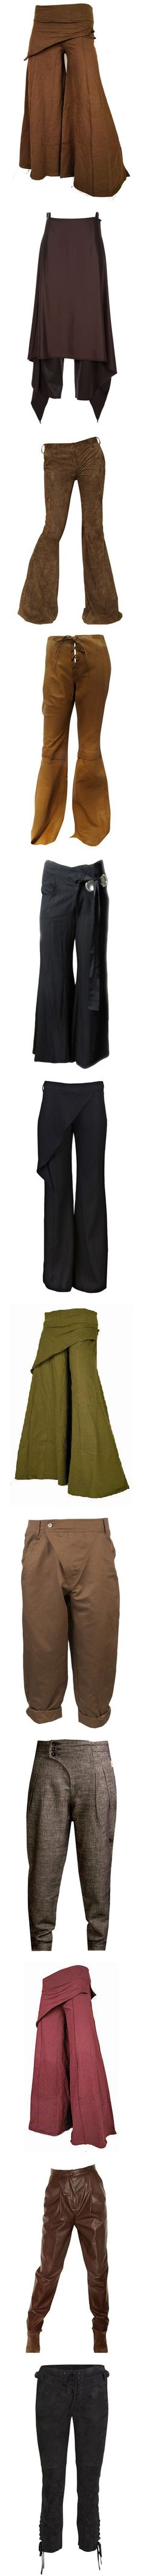 Fantasy Wear: Adventure Pants by savagedamsel on Polyvore featuring pants, bottoms, calças, brown pants, boho pants, boho chic pants, bohemian pants, skirts, wool trousers and wool pants